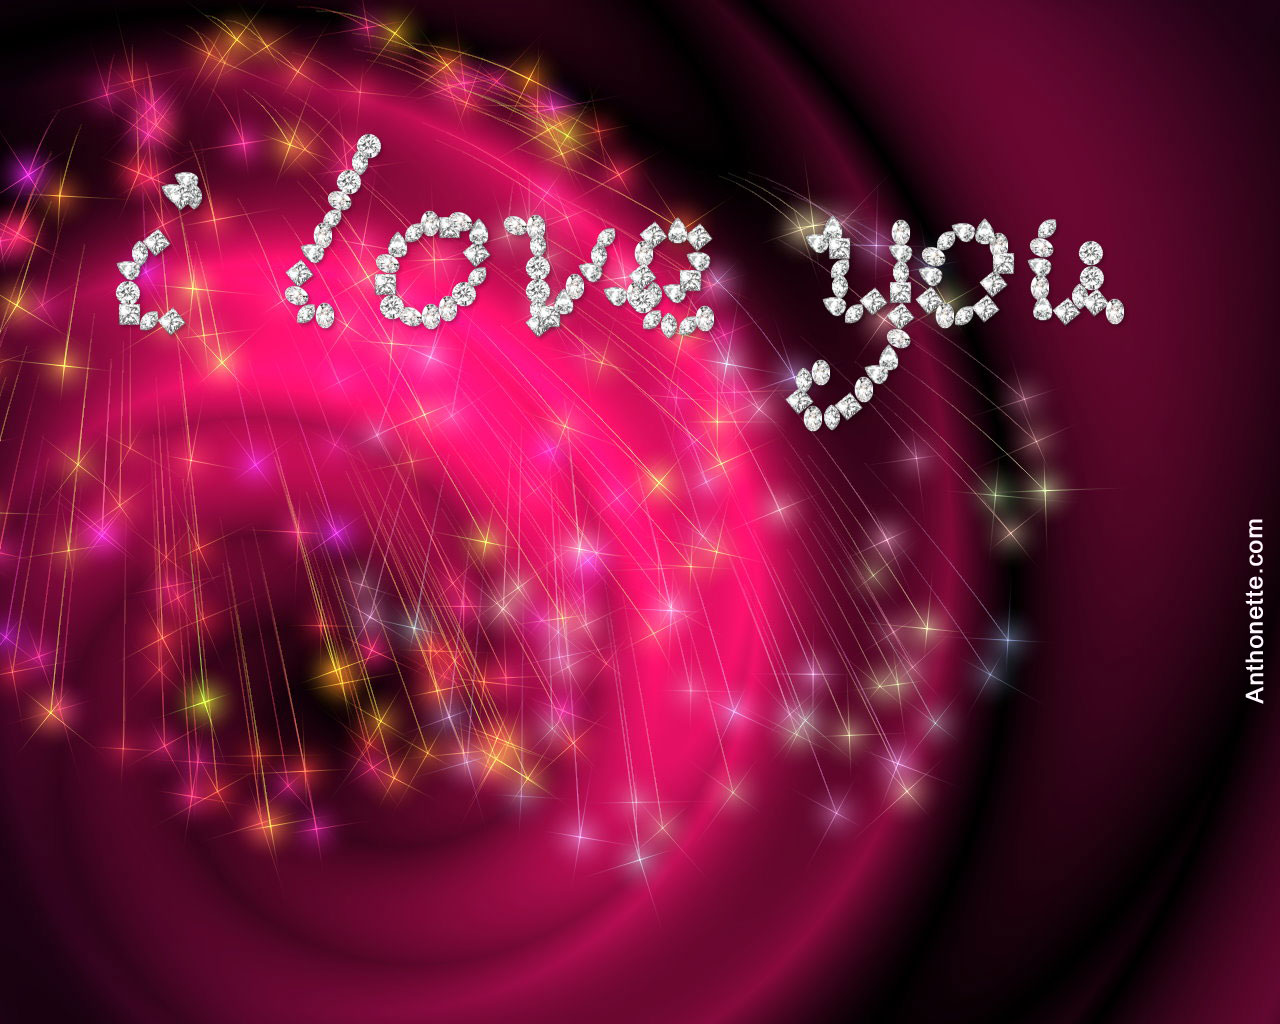 Love Wallpaper Backgrounds For Mobile : love wallpapers for mobile phone -mobile wallpaper part 4 ...